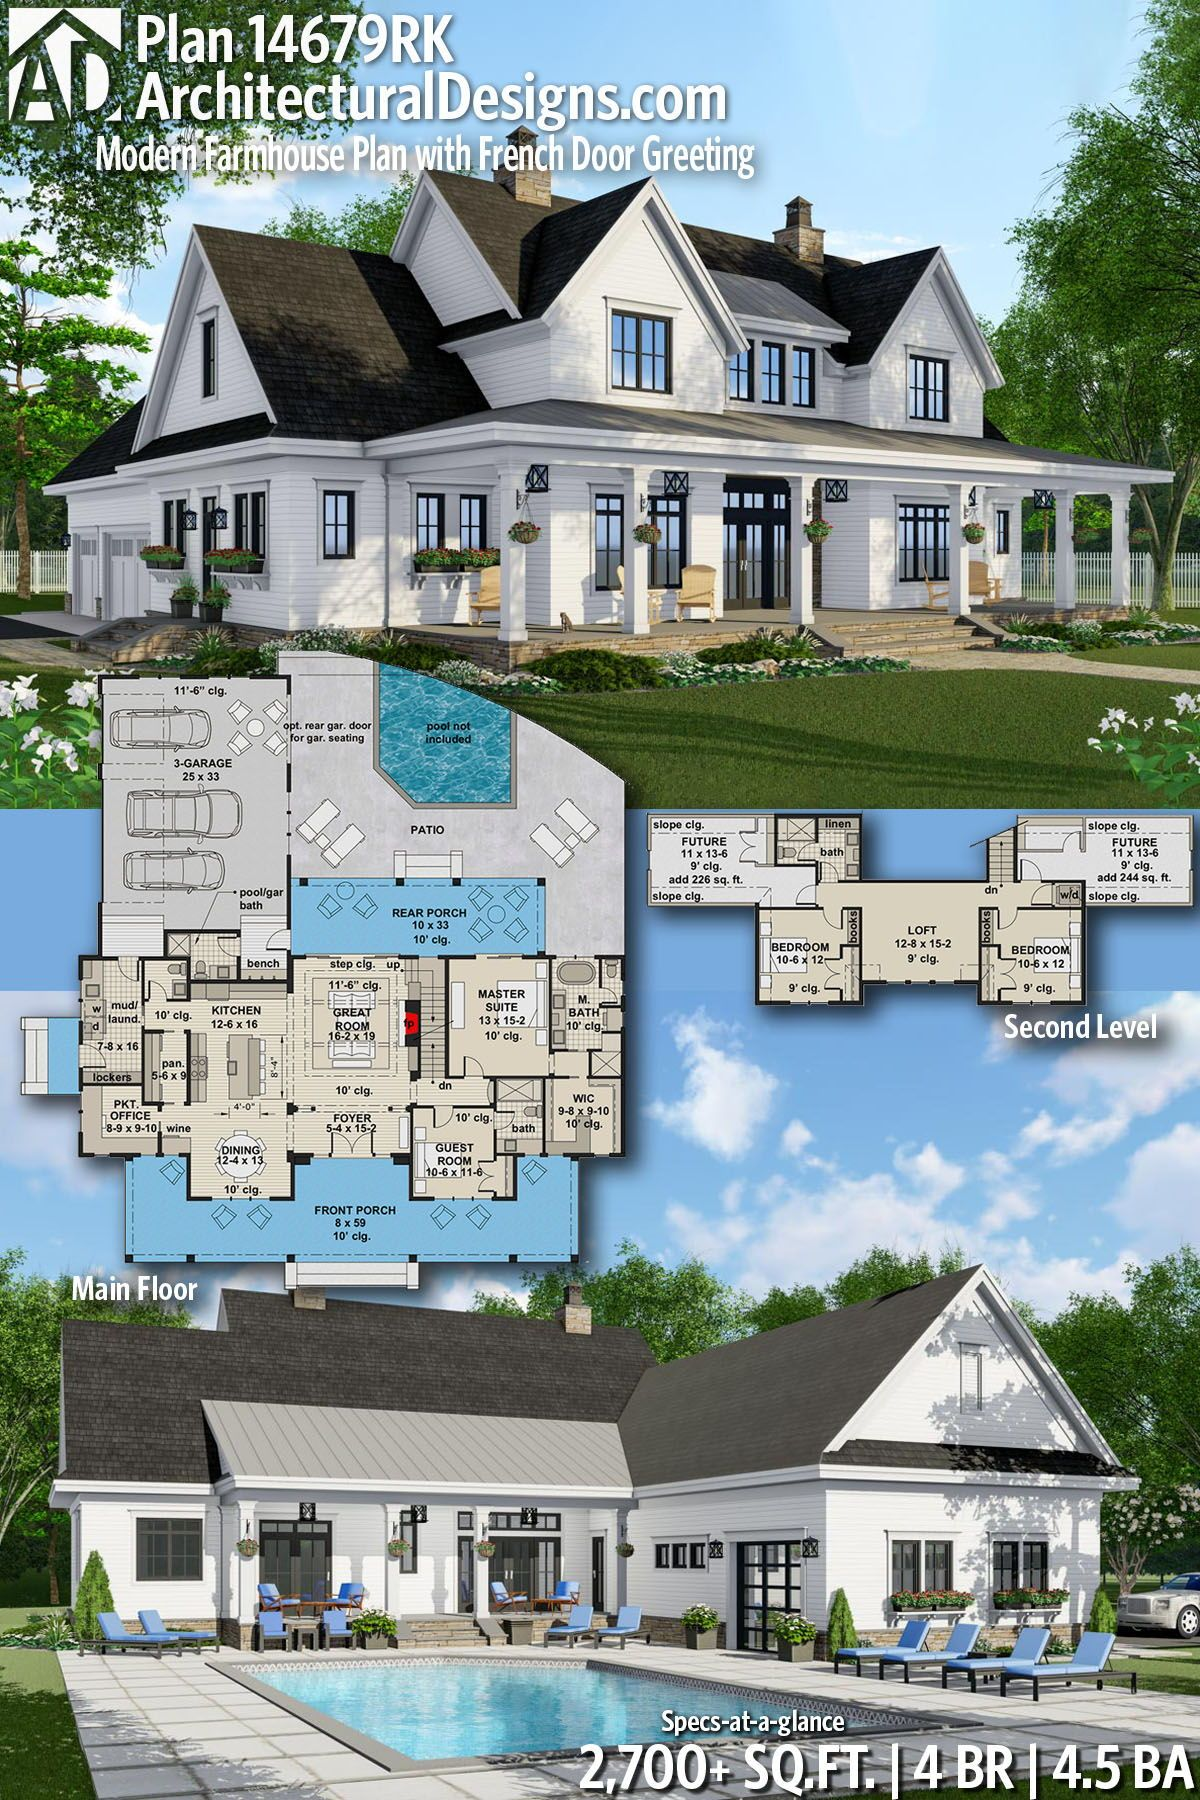 Plan 14679RK: Modern Farmhouse Plan with French Door Greeting #buildingahouse